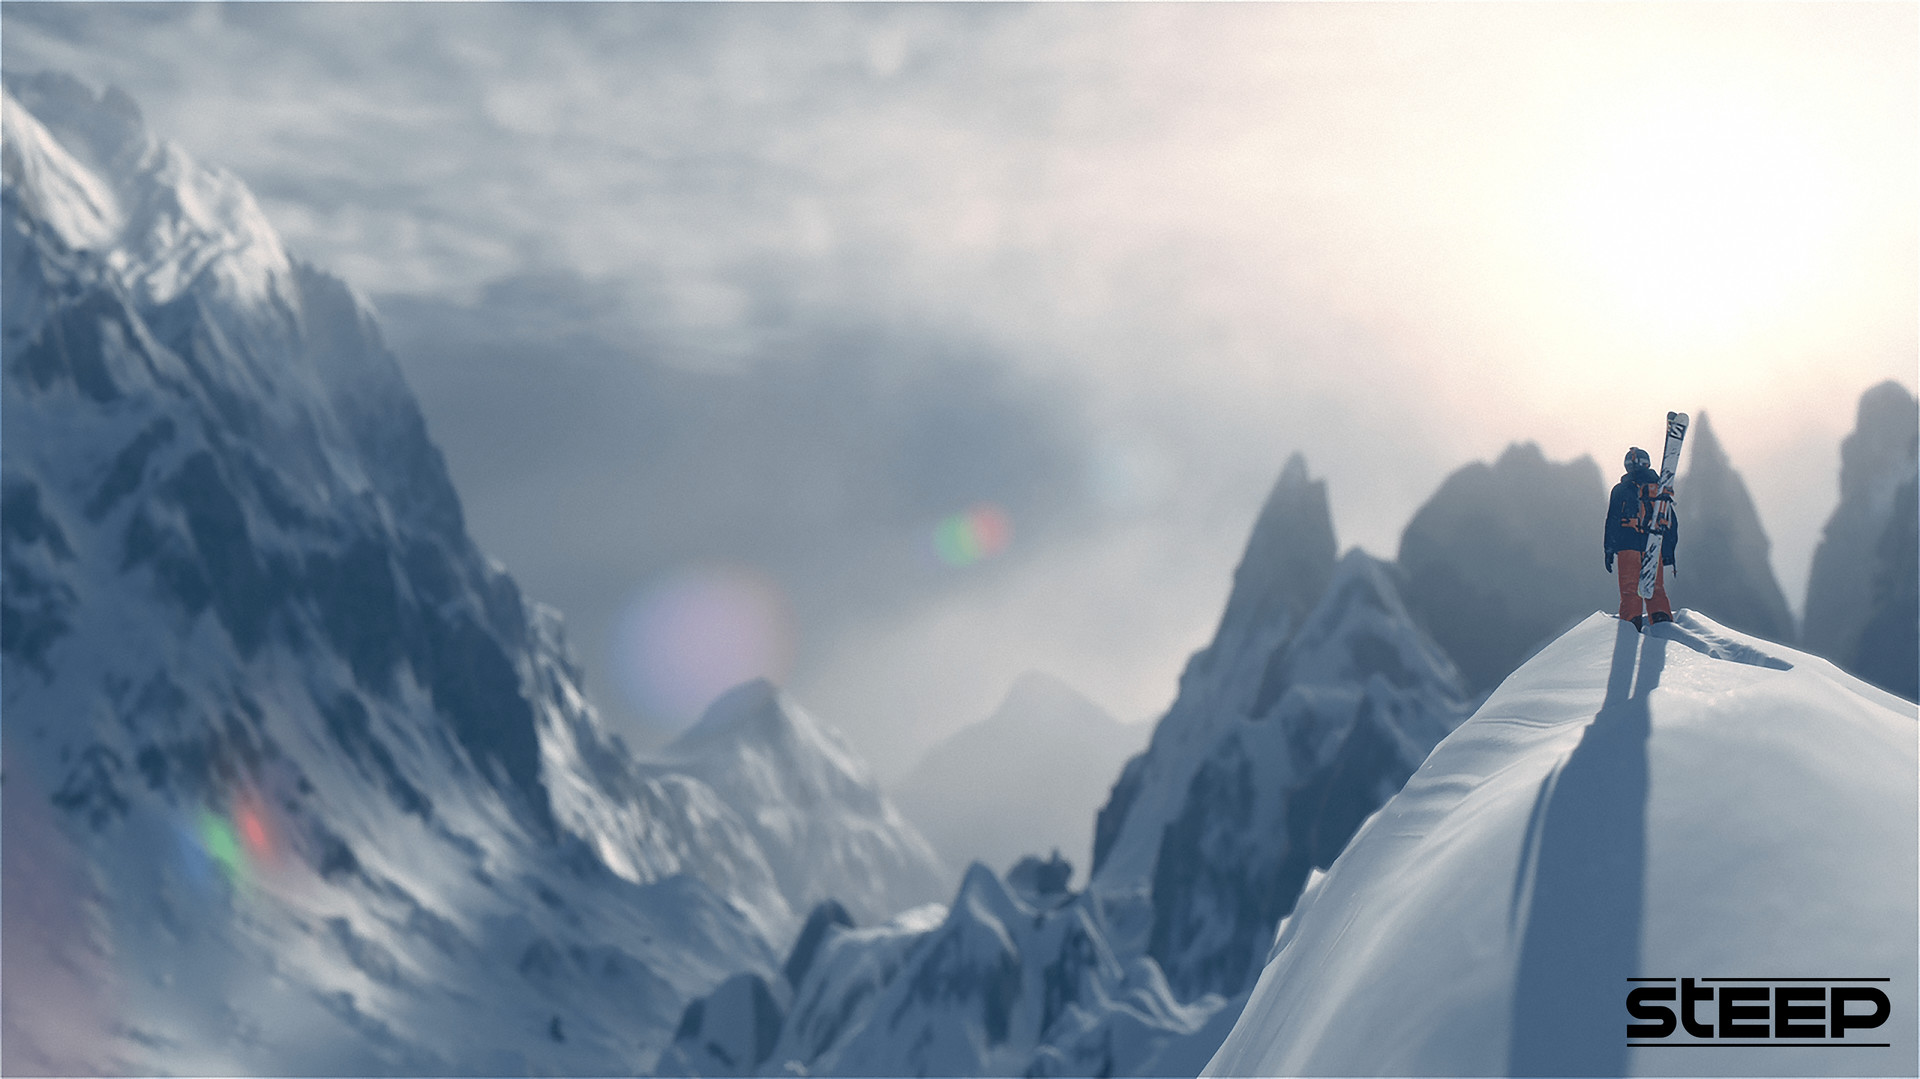 Steep HD Wallpapers and Background Images